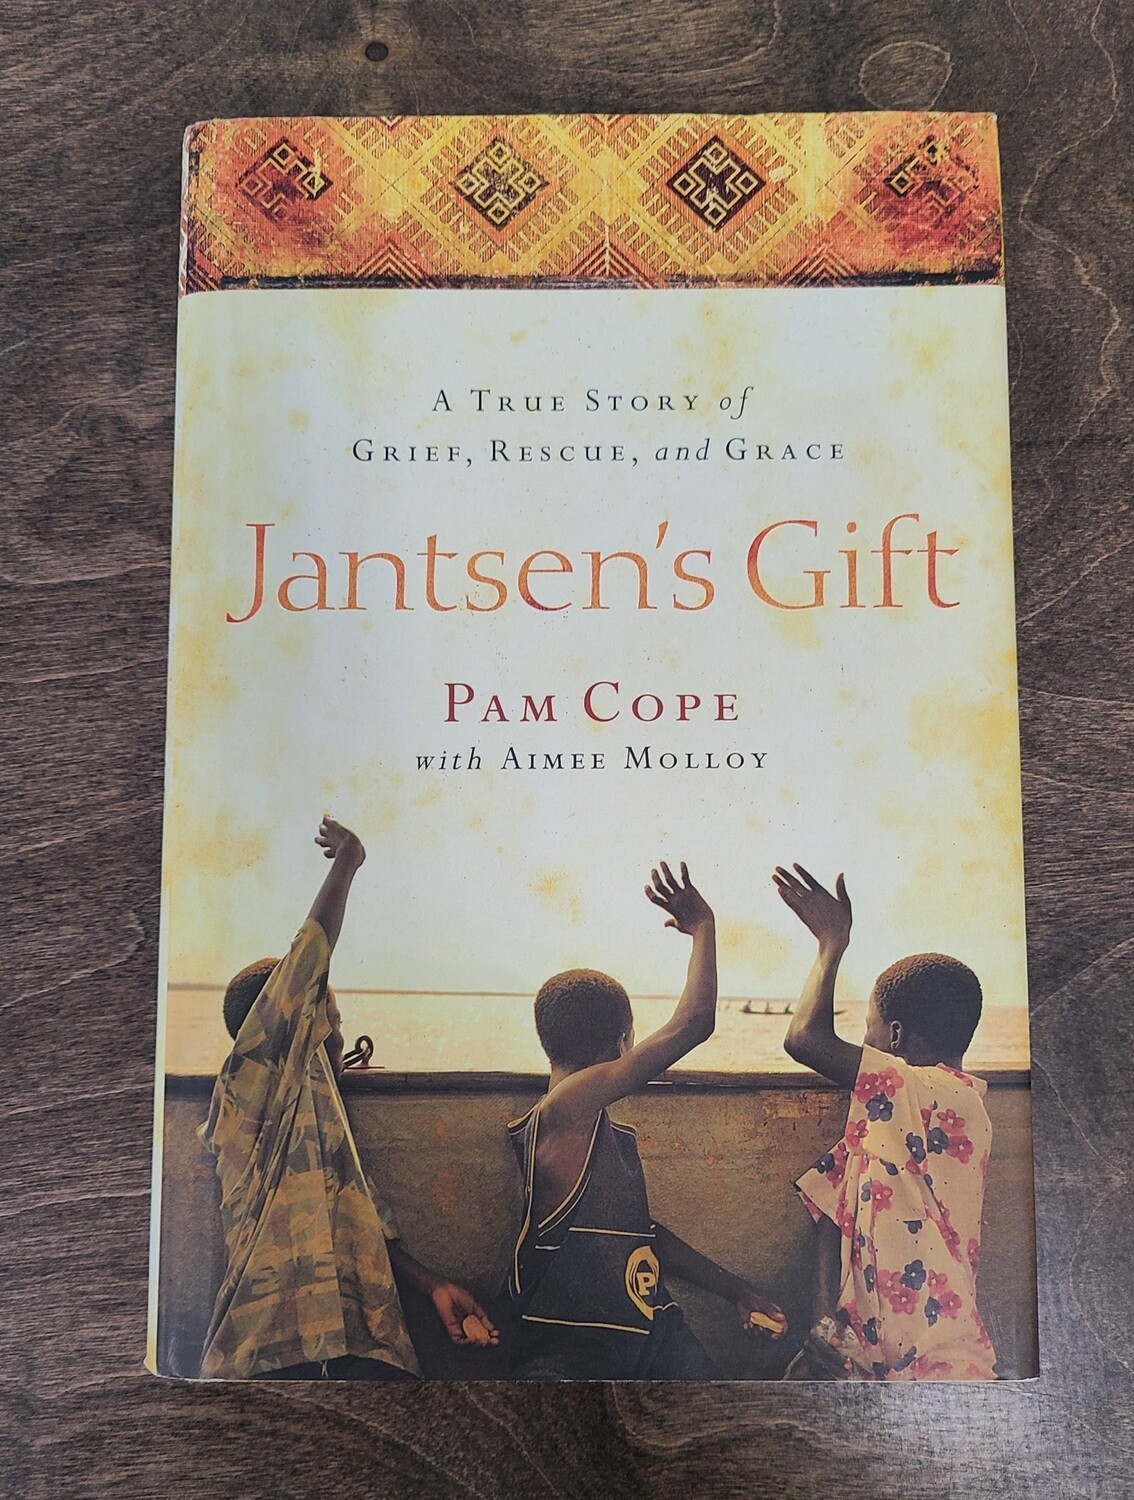 Jantsen's Gift by Pam Cope with Aimee Molloy